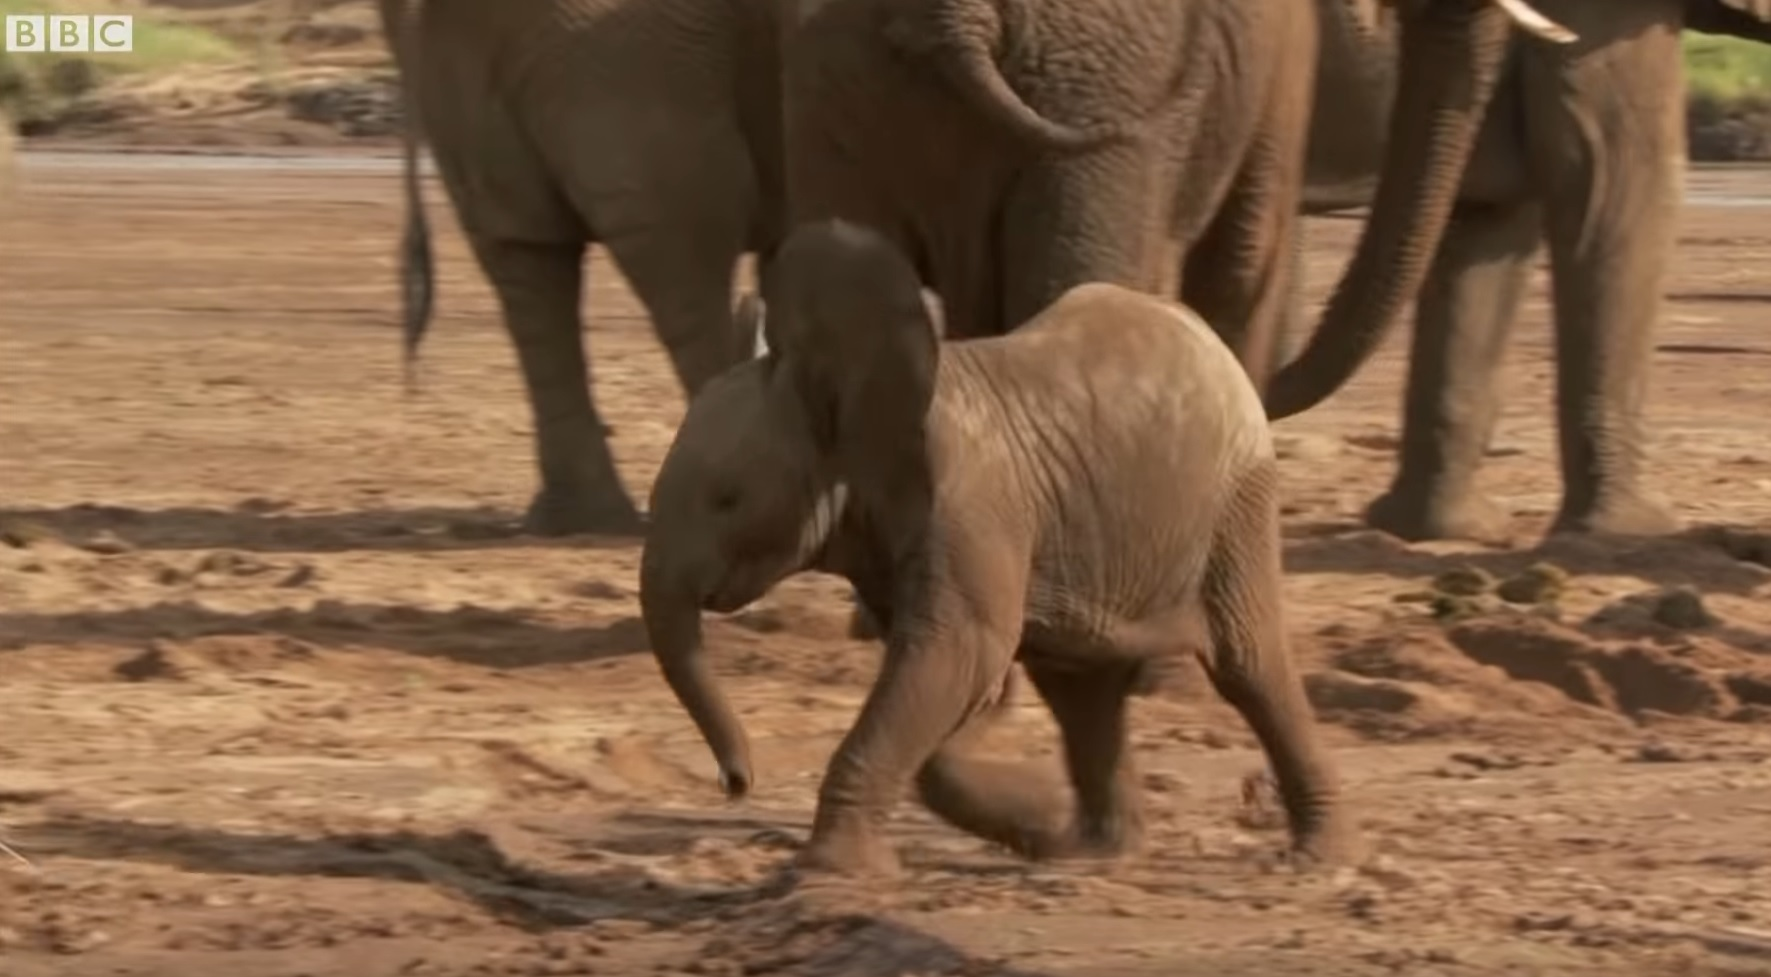 Baby Elephant Plays In The Sand